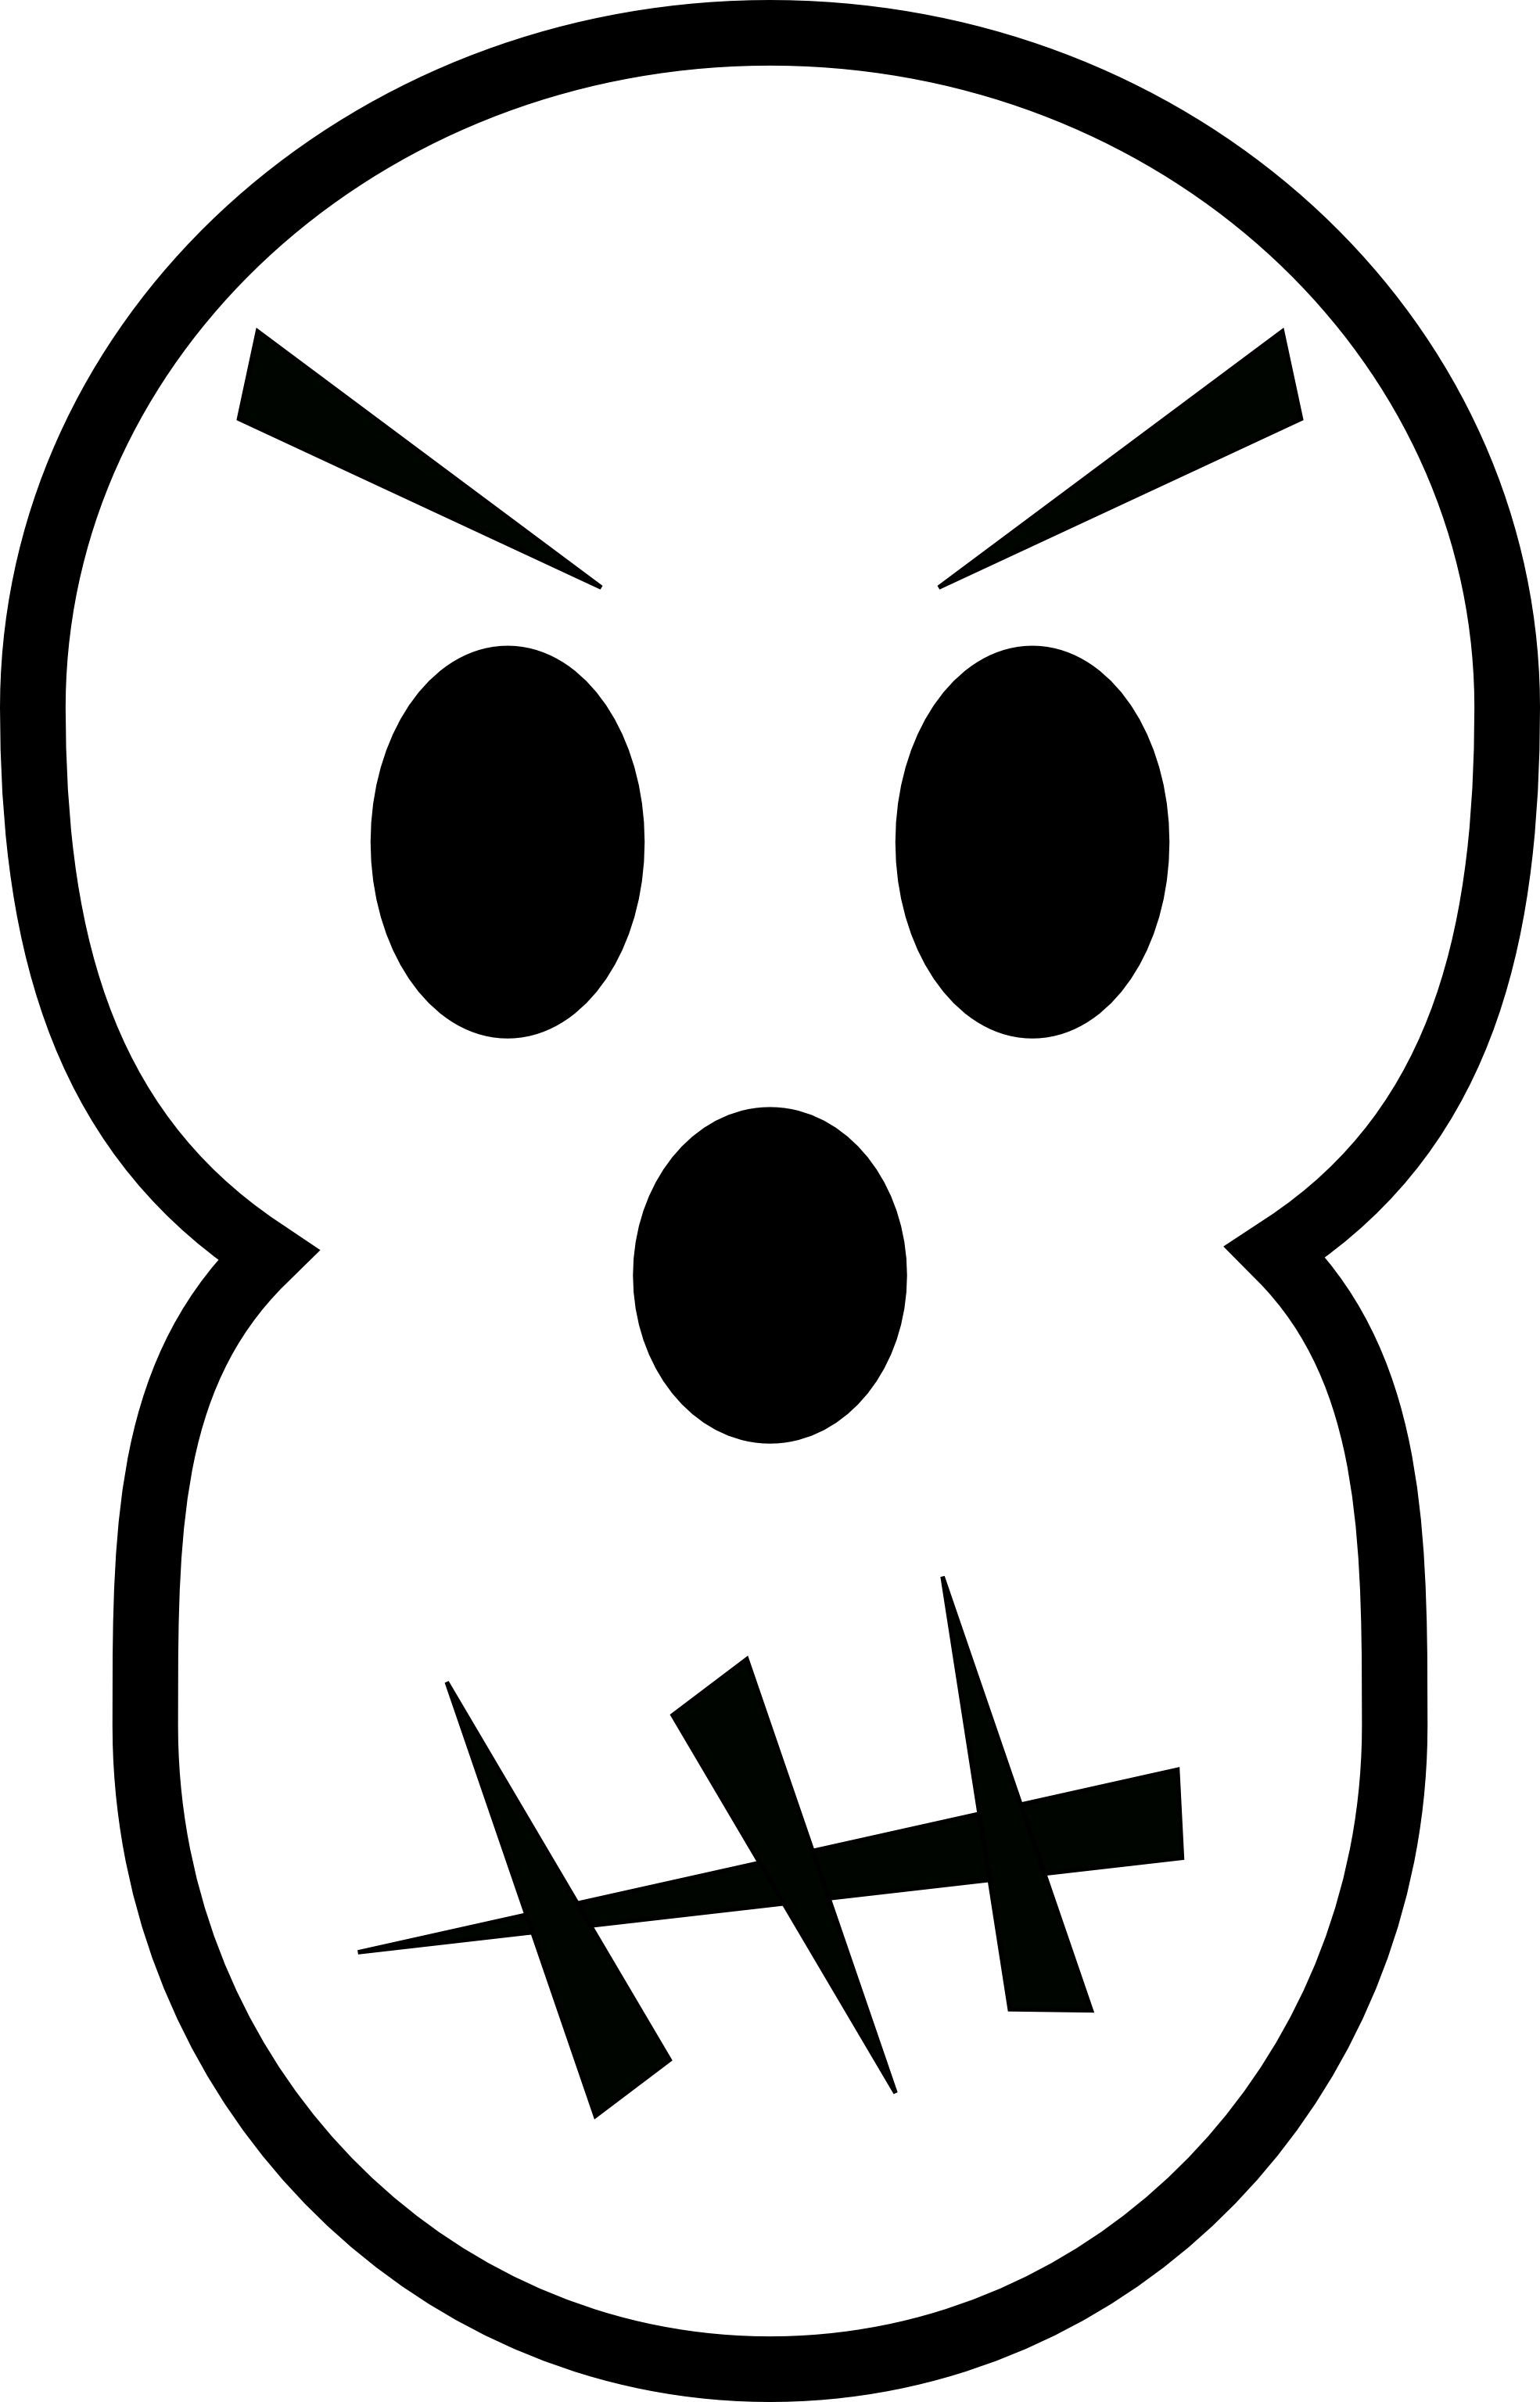 Clipart dog angry. Black and white panda